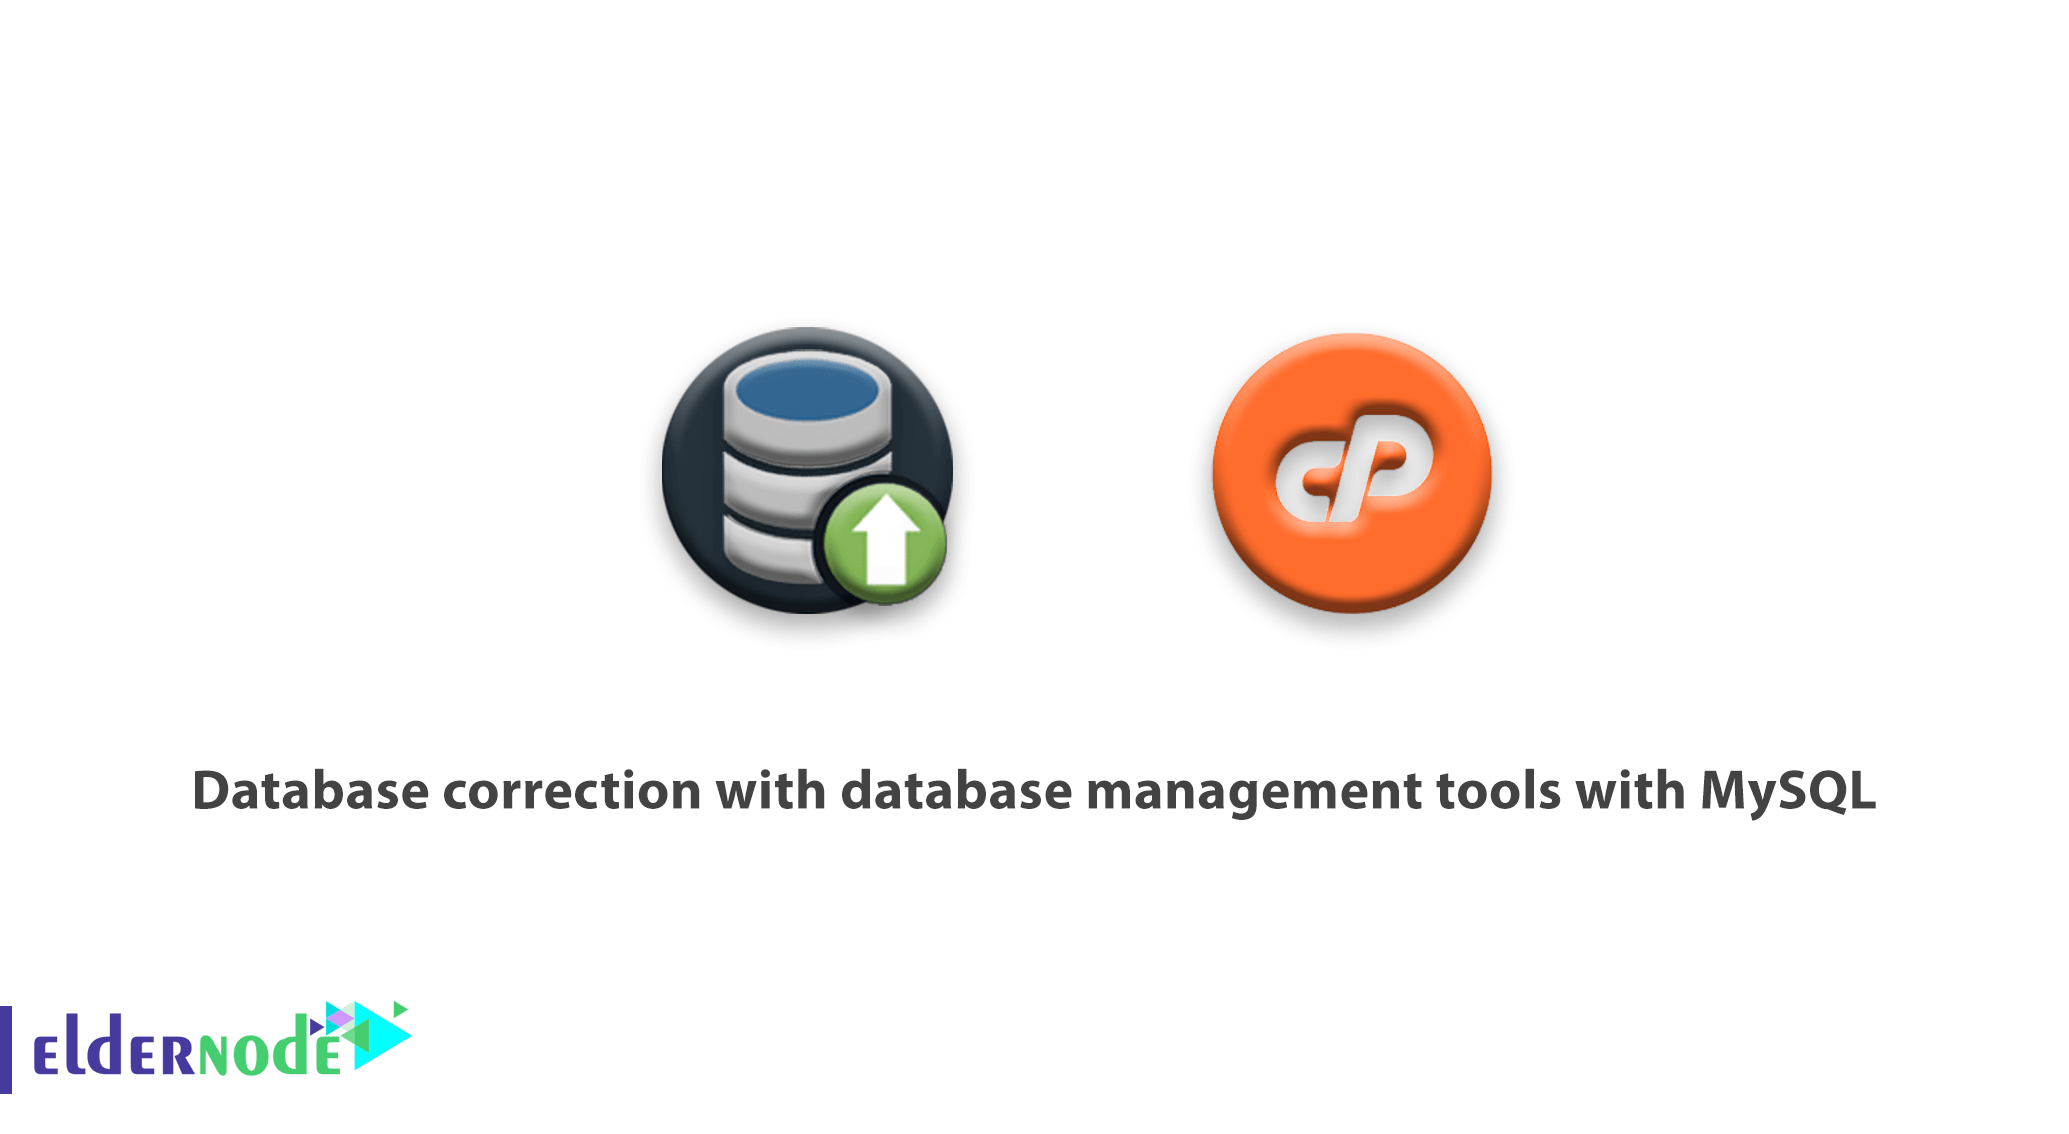 Database correction with database management tools with MySQL